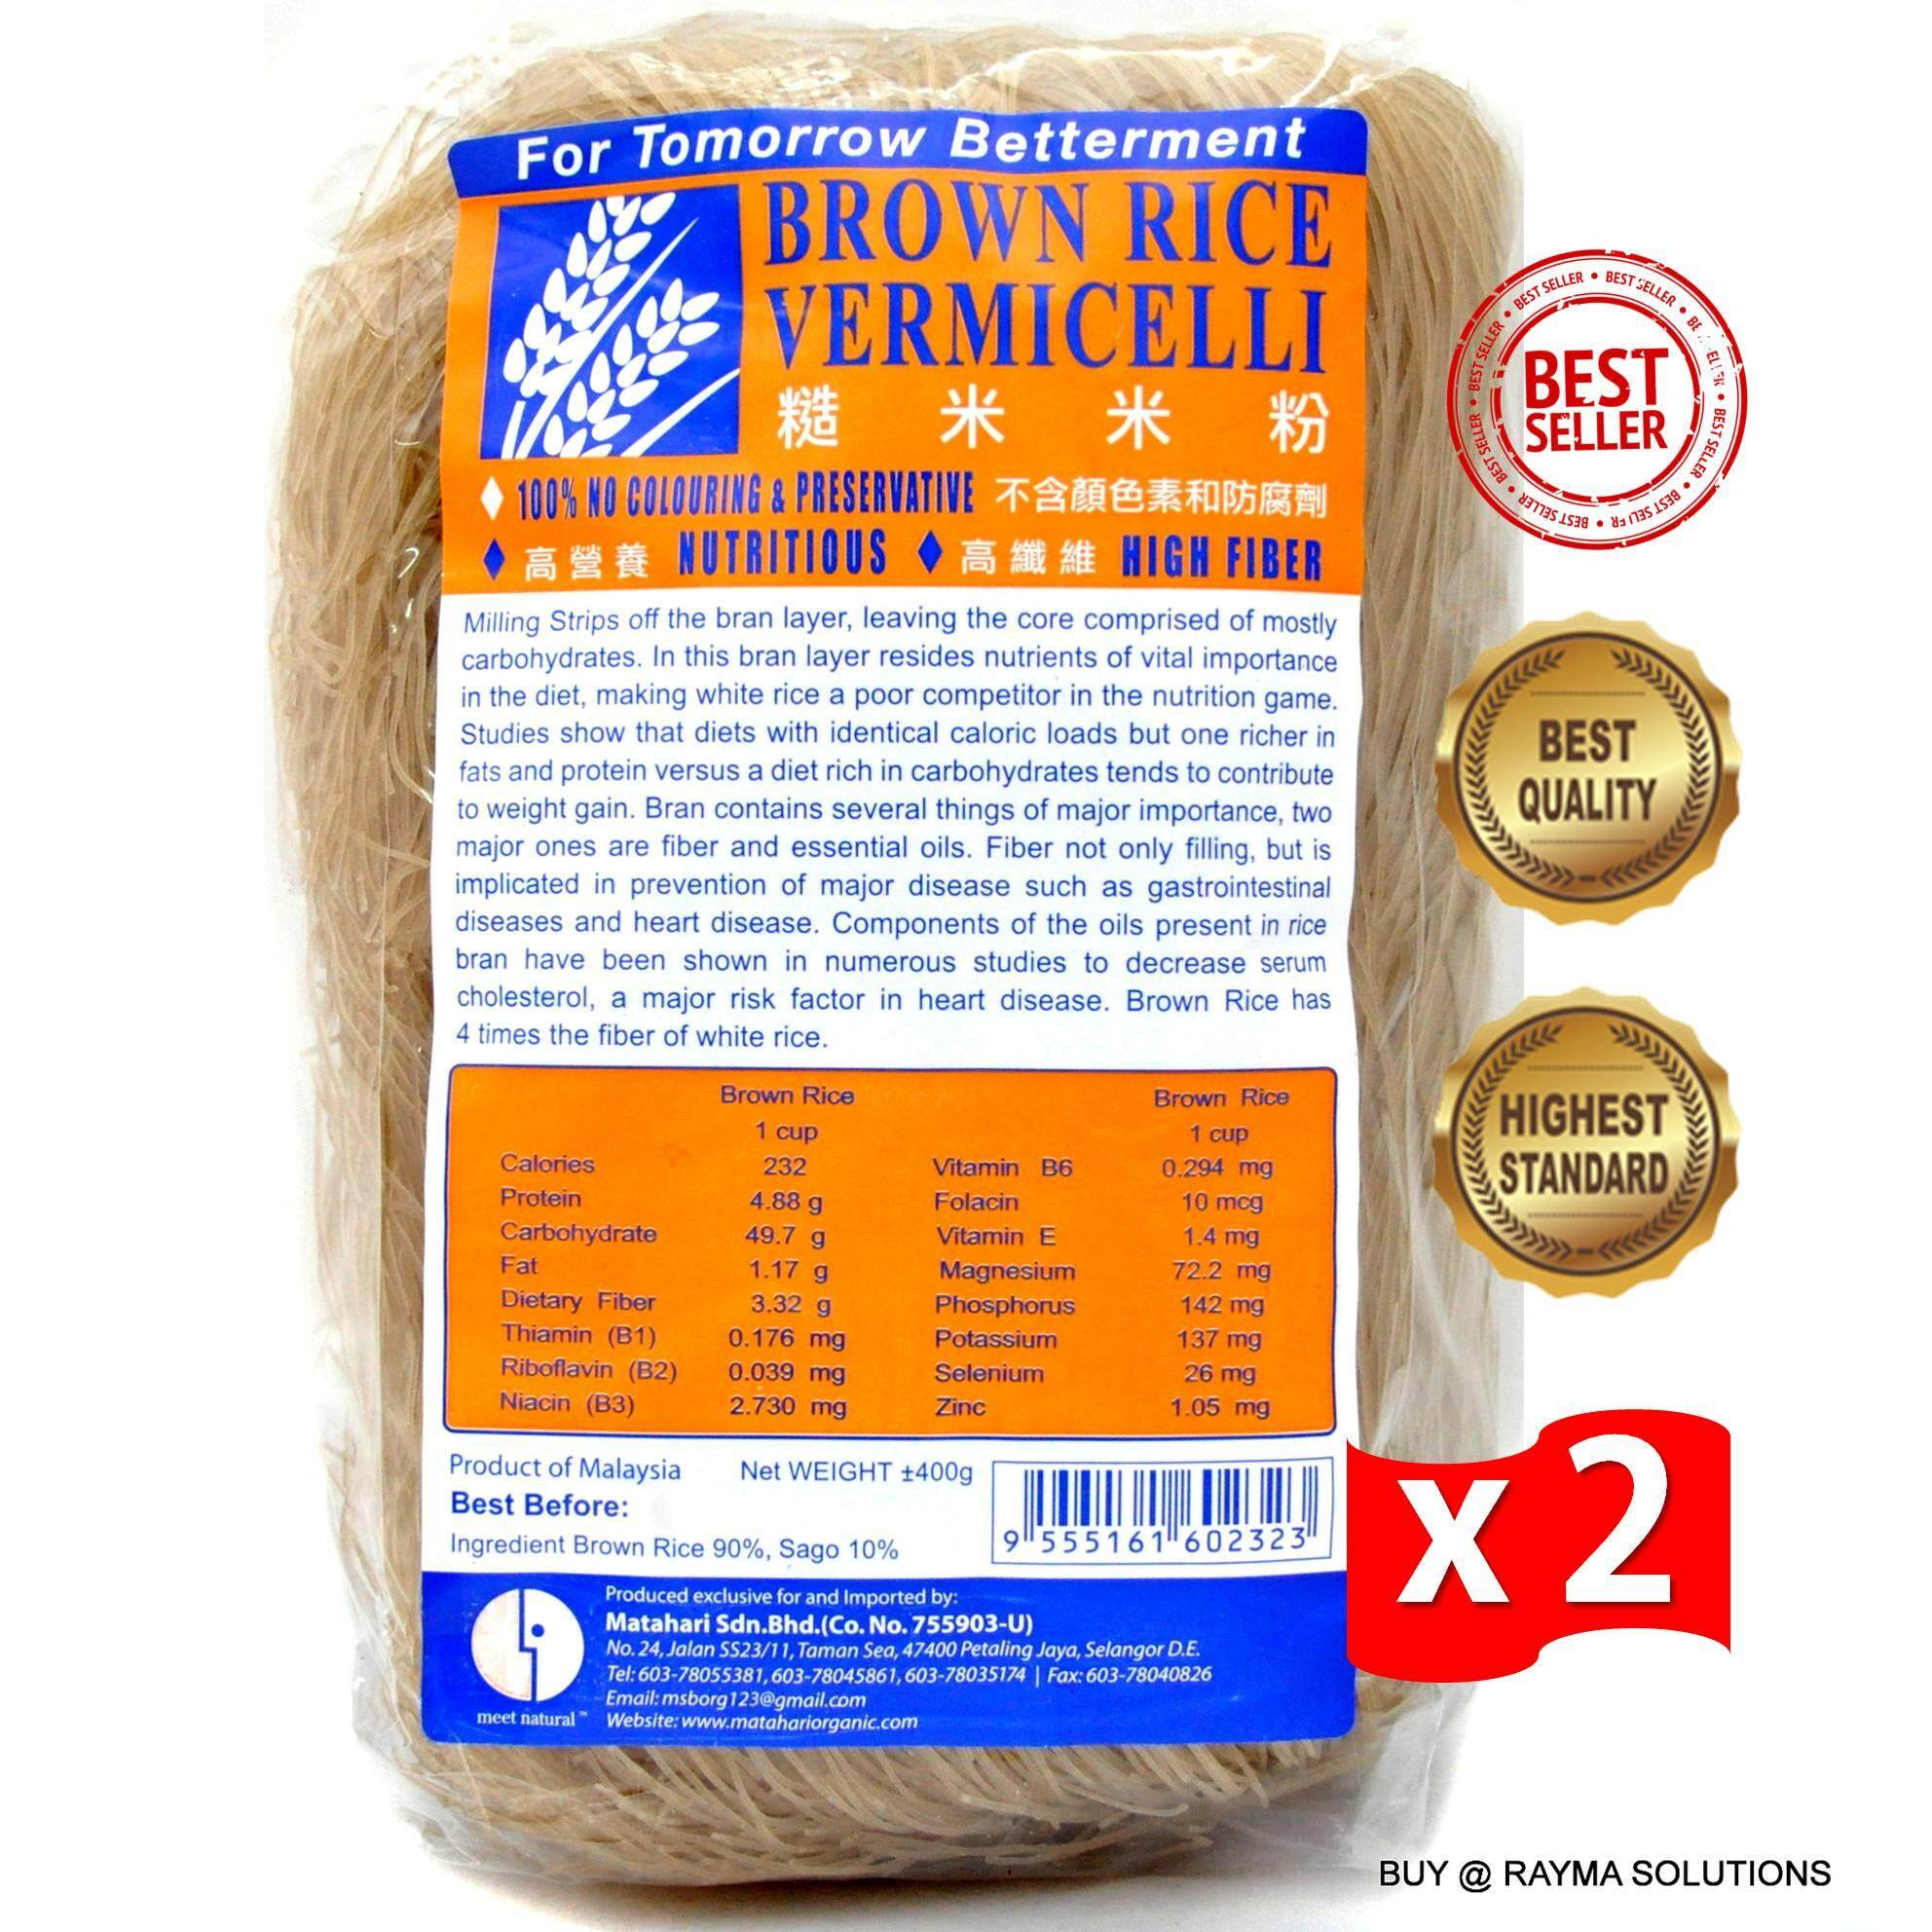 [$AVE More!] MH FOOD Brown Rice Vermicelli 400g (Twin Pack)